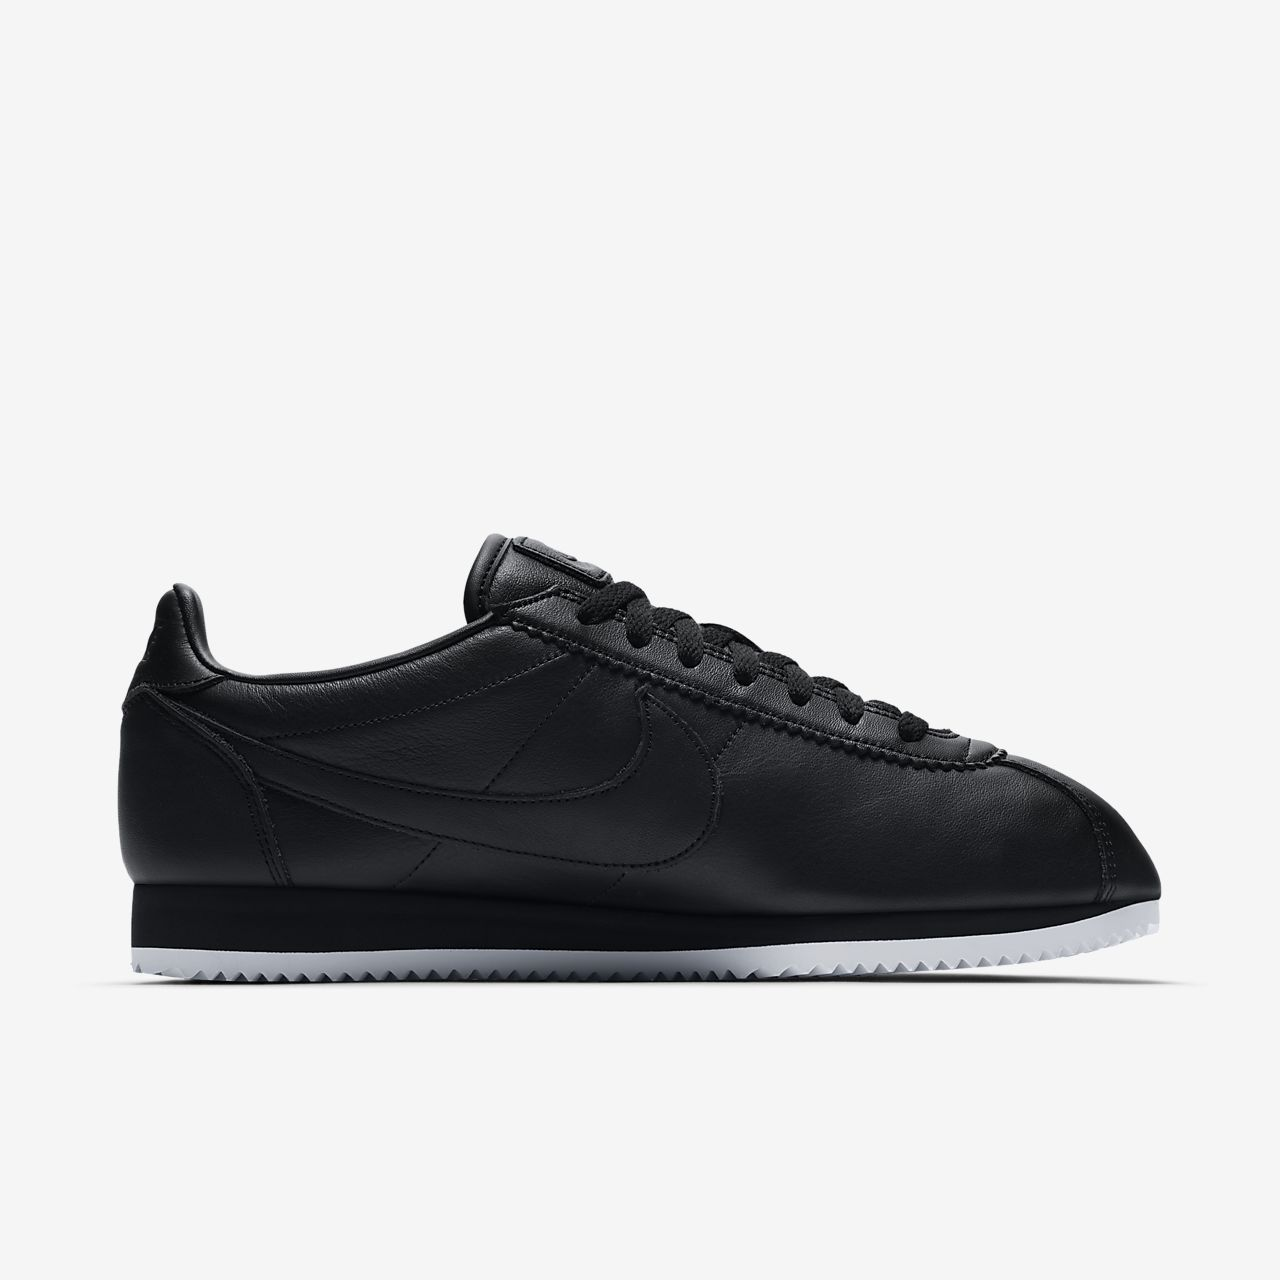 nike classic cortez leather premium herrenschuh